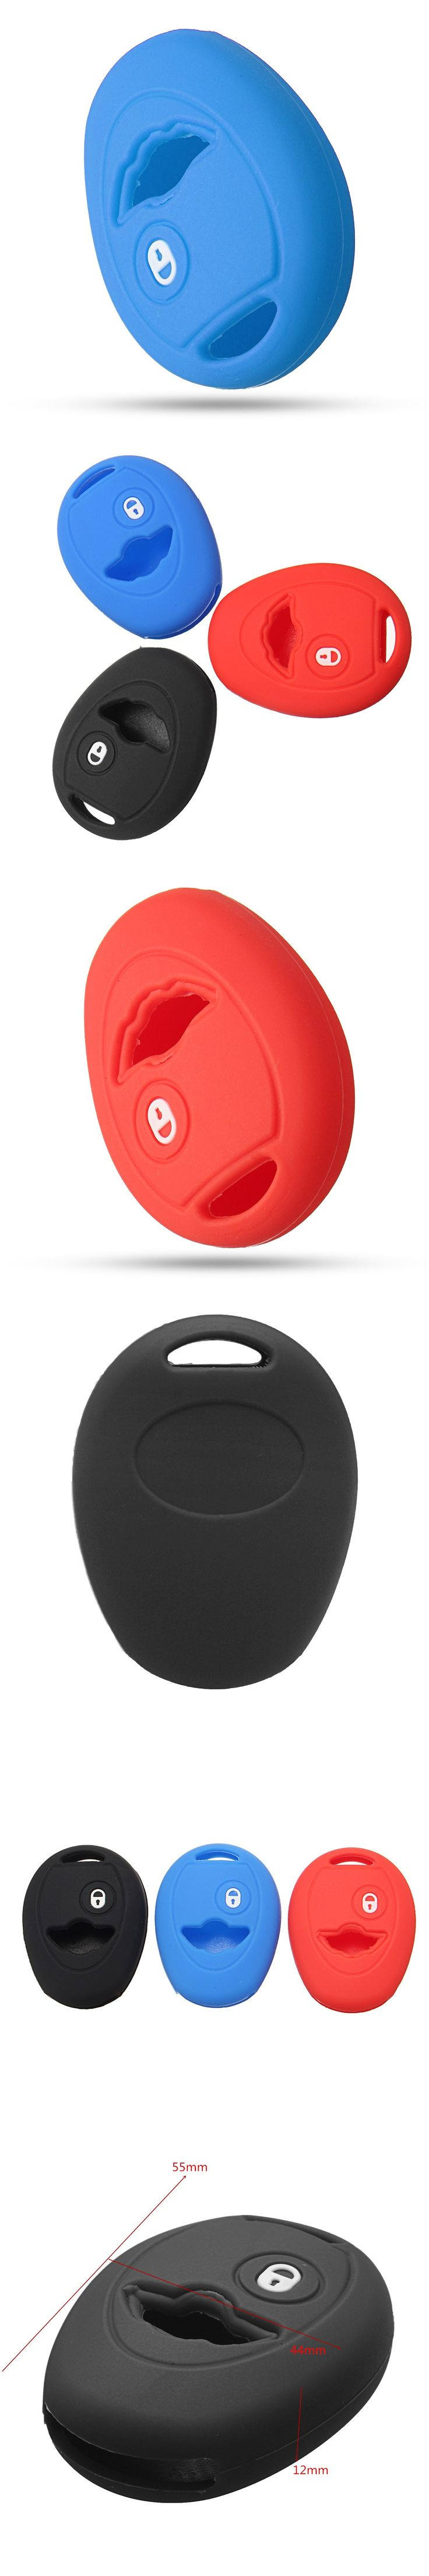 1 Button Car Silicone Key Case Cover Remote Key Fob Protect Cover Case For BMW for Mini Cooper One S R50 R53 2002-2005